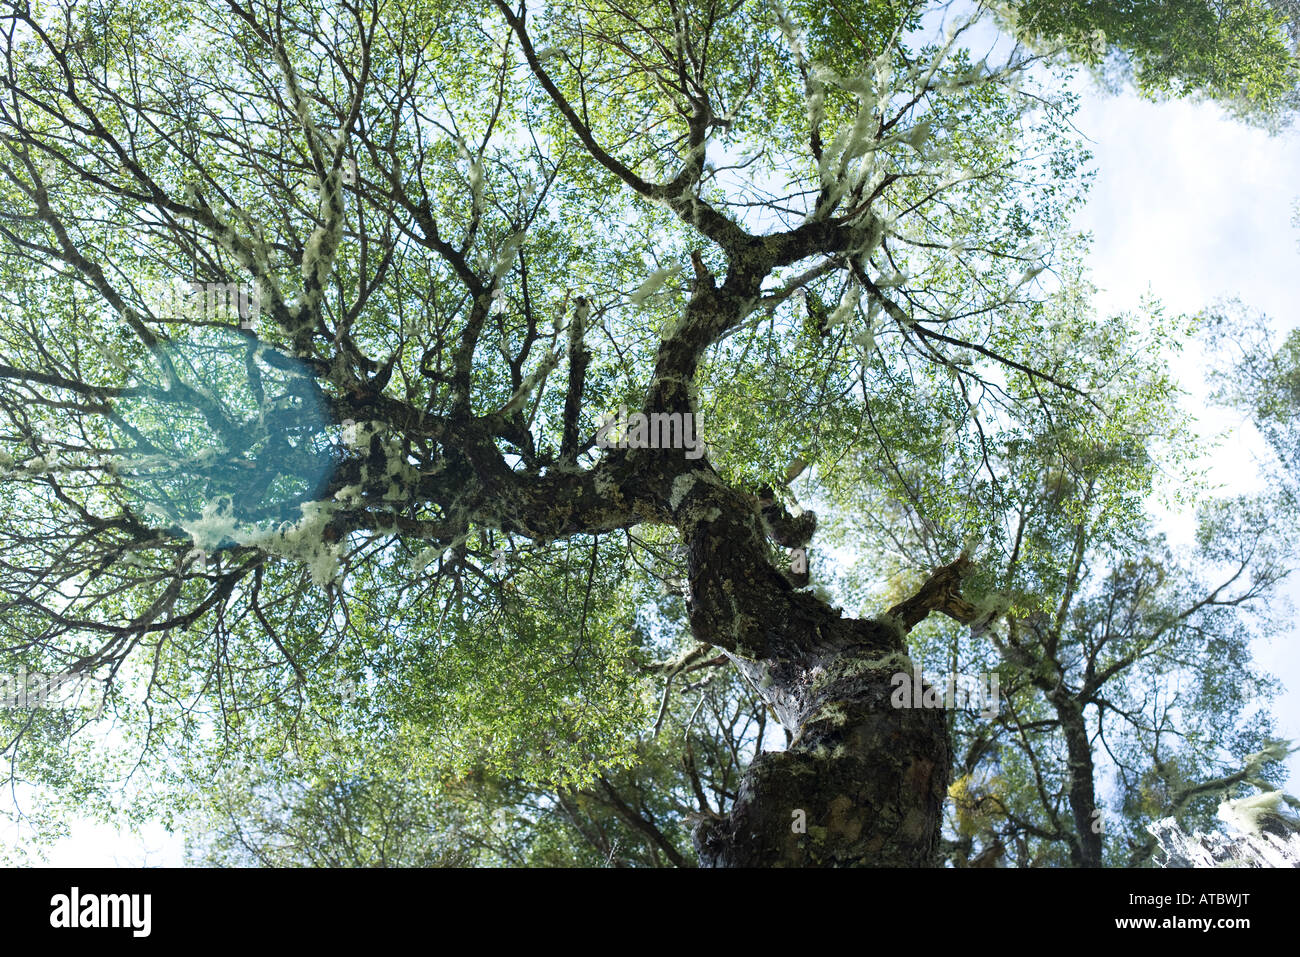 Tree canopy, viewed from directly below - Stock Image